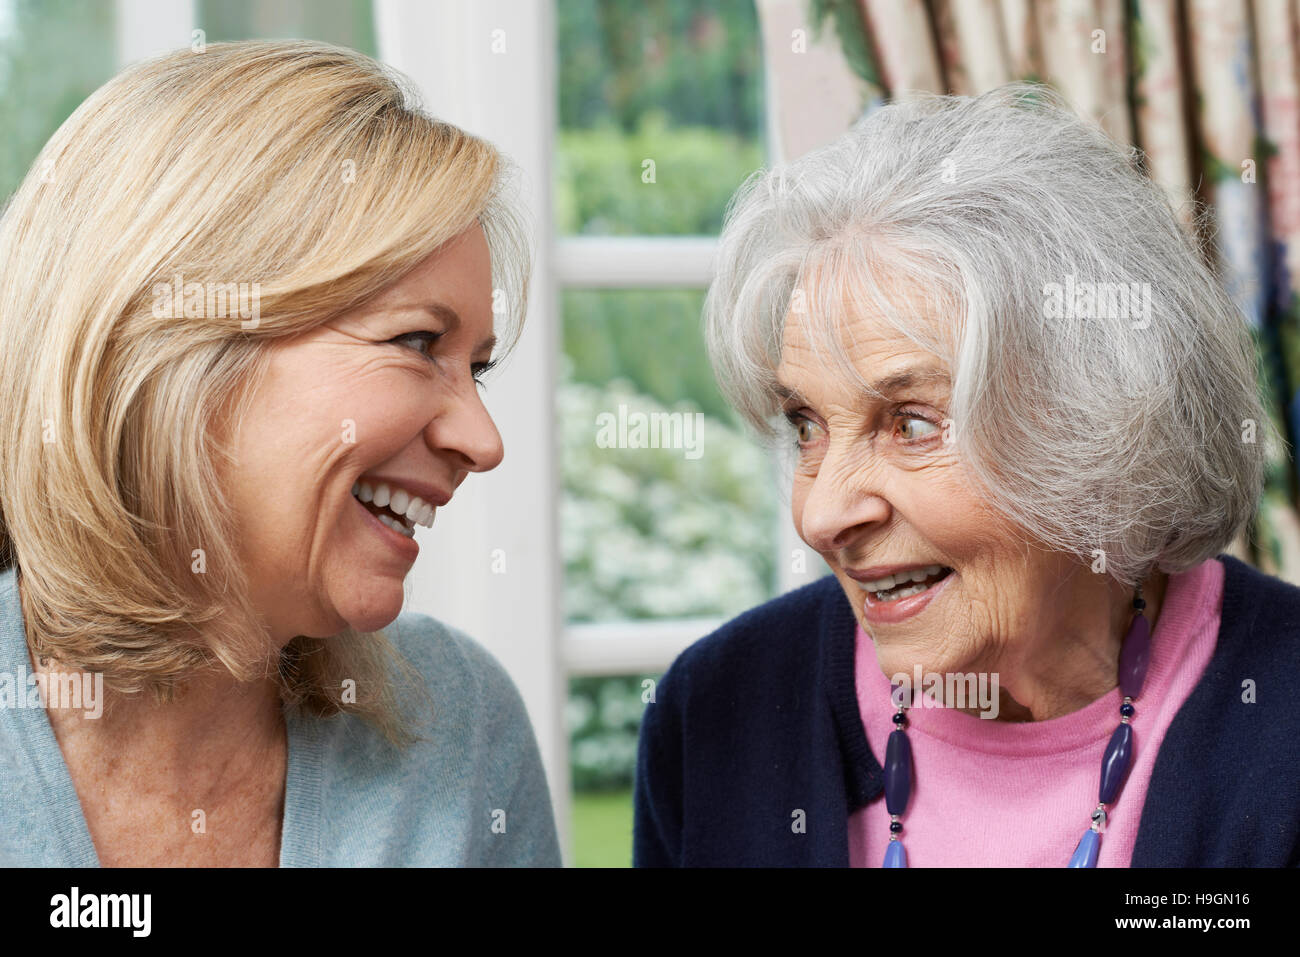 Senior Mother And Adult Daughter Talking Together - Stock Image